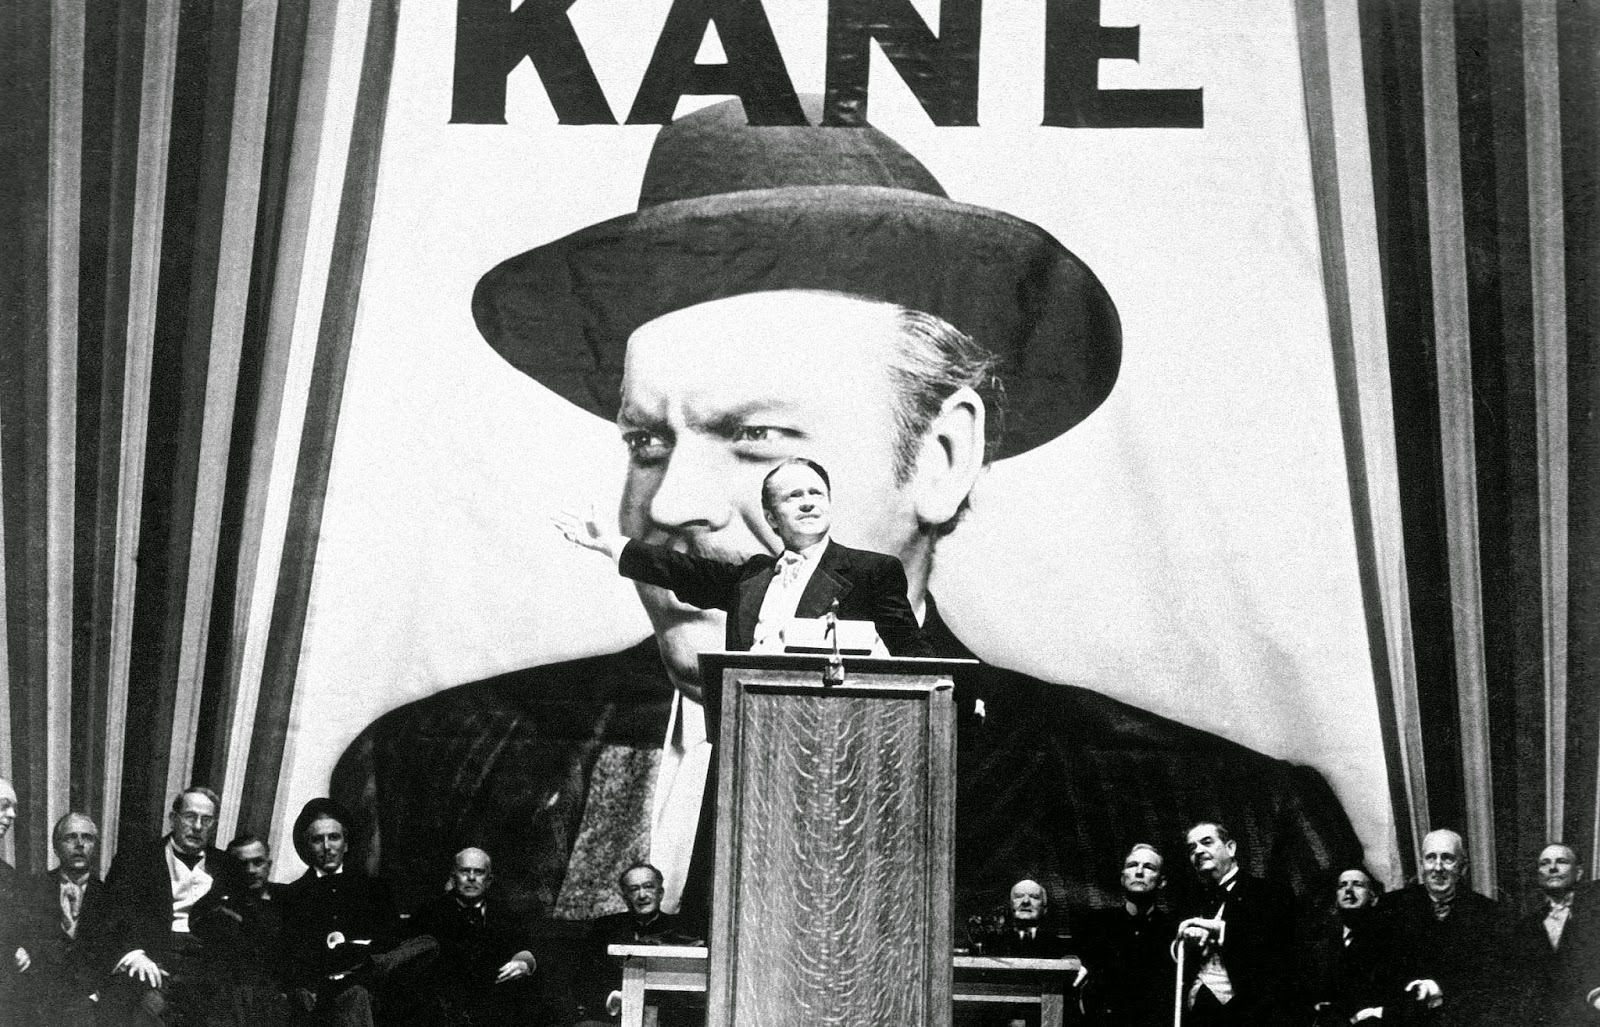 Citizen Kane: Narrative Style and Kane's Character